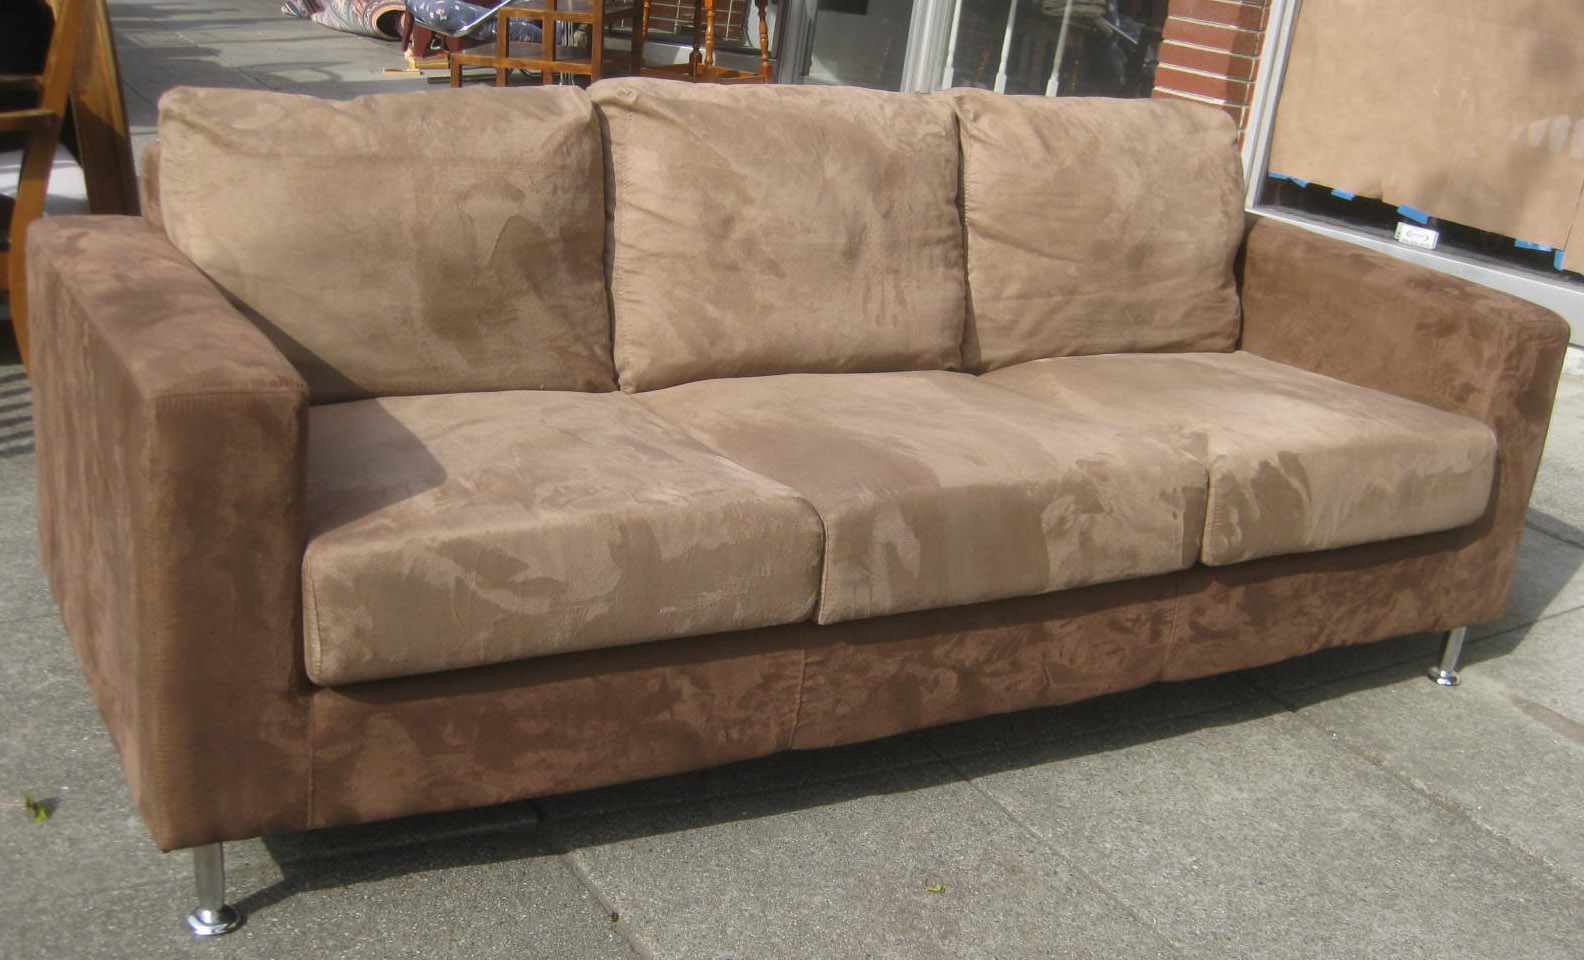 Brown And Beige Sofa Set For Sale By Owner Uhuru Furniture Collectibles Sold Tan